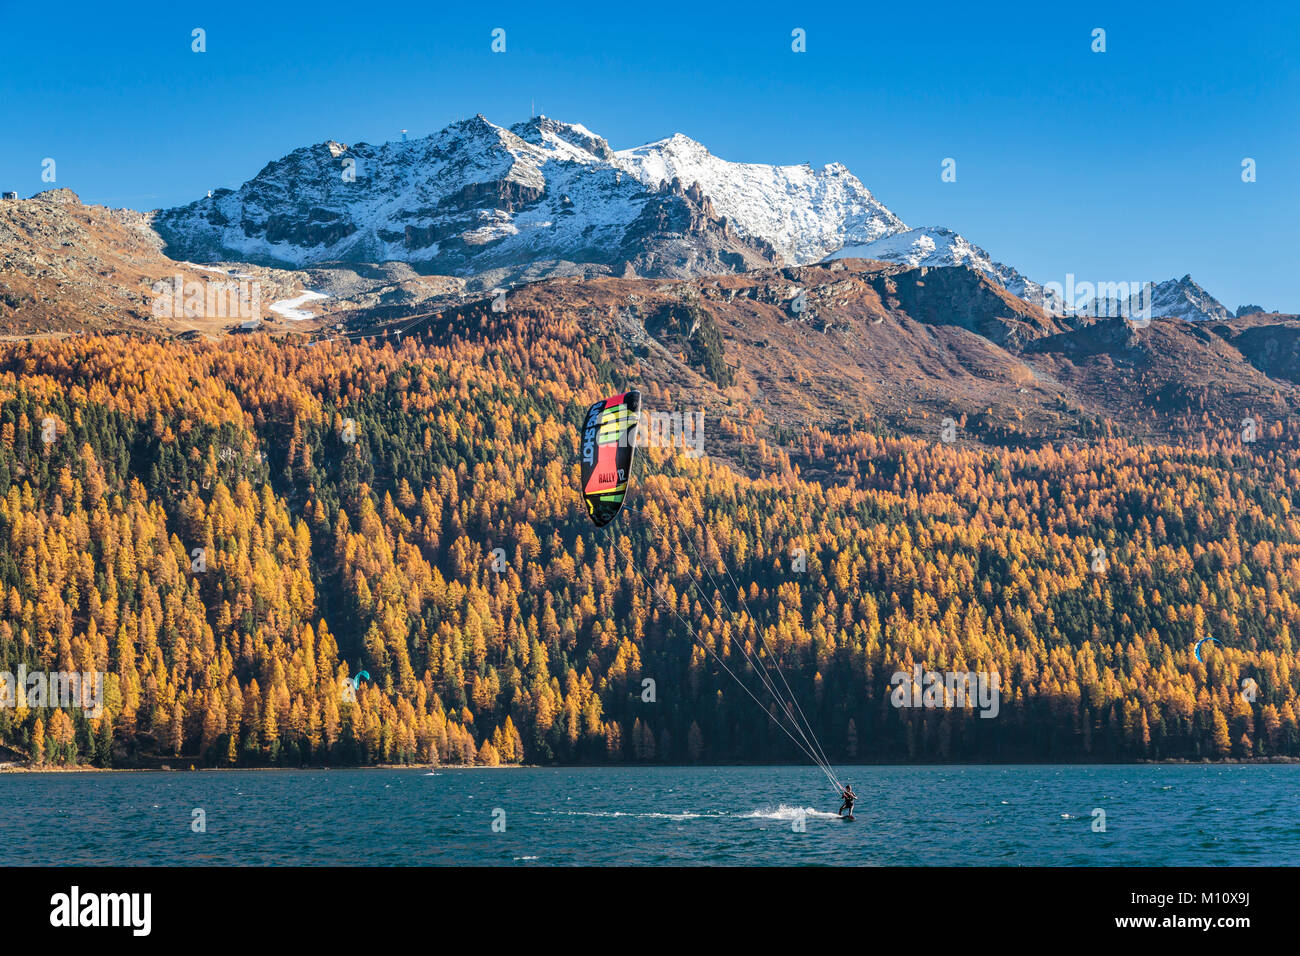 Wind surfing on Lake Silvaplana with fall foliage color in the larch trees in the Engadin Valley, Graubuden, Switzerland, - Stock Image